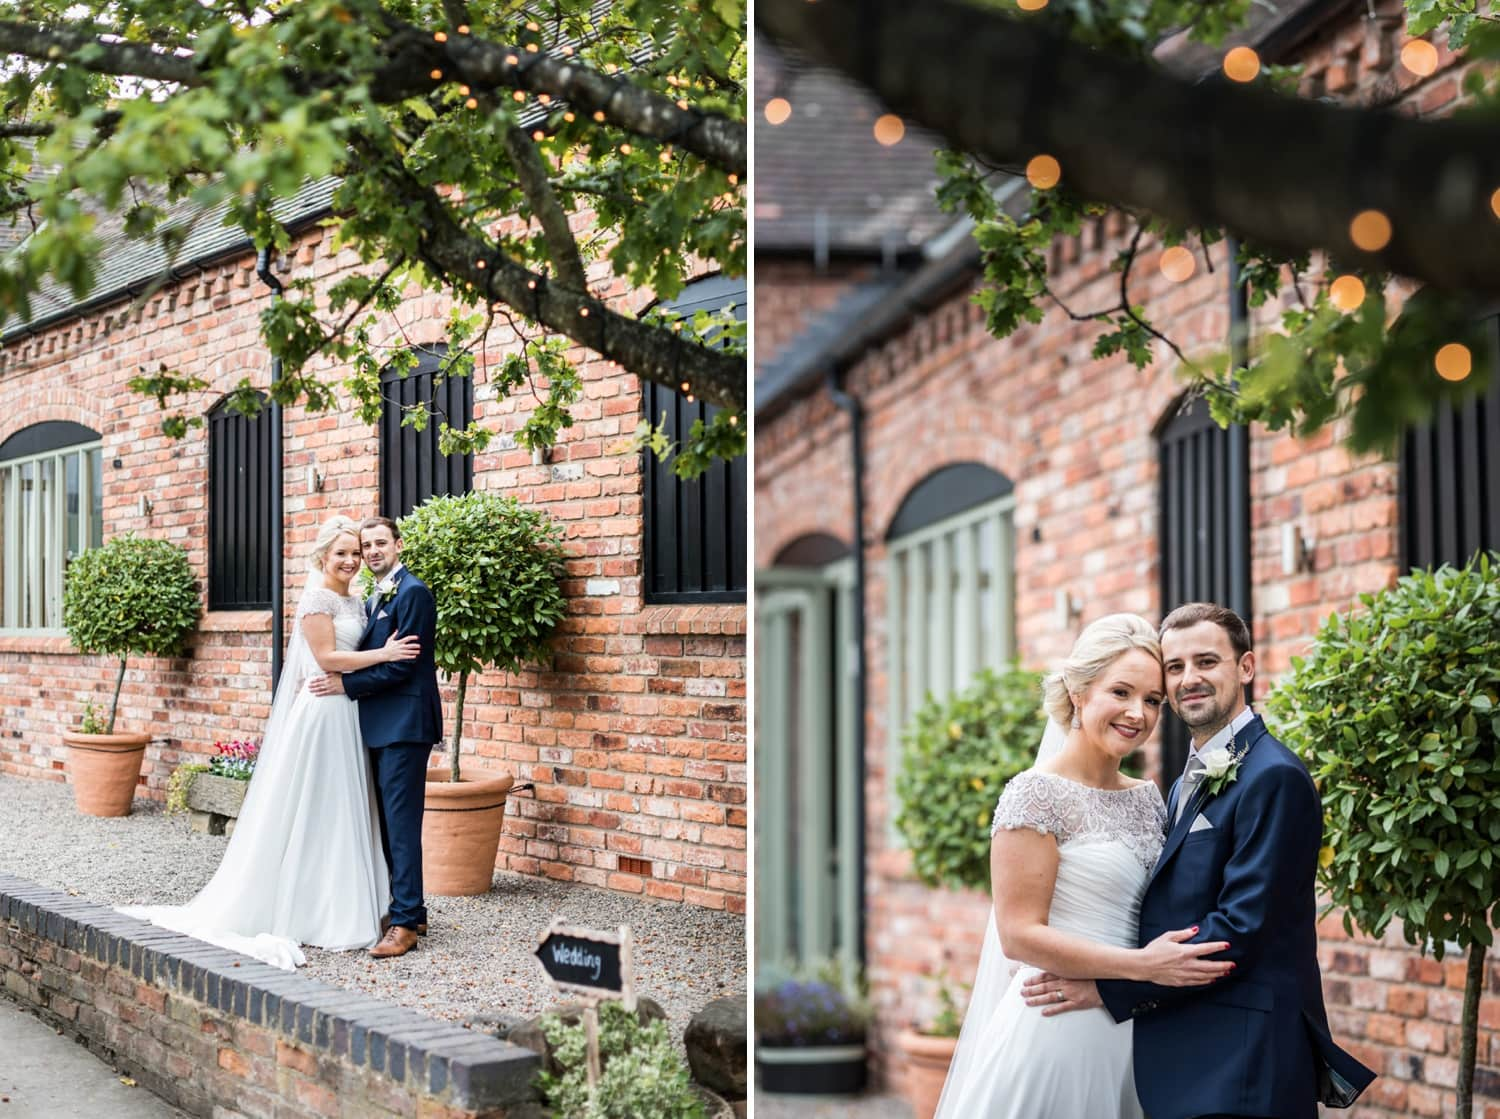 Bride and groom at Curradine Barns